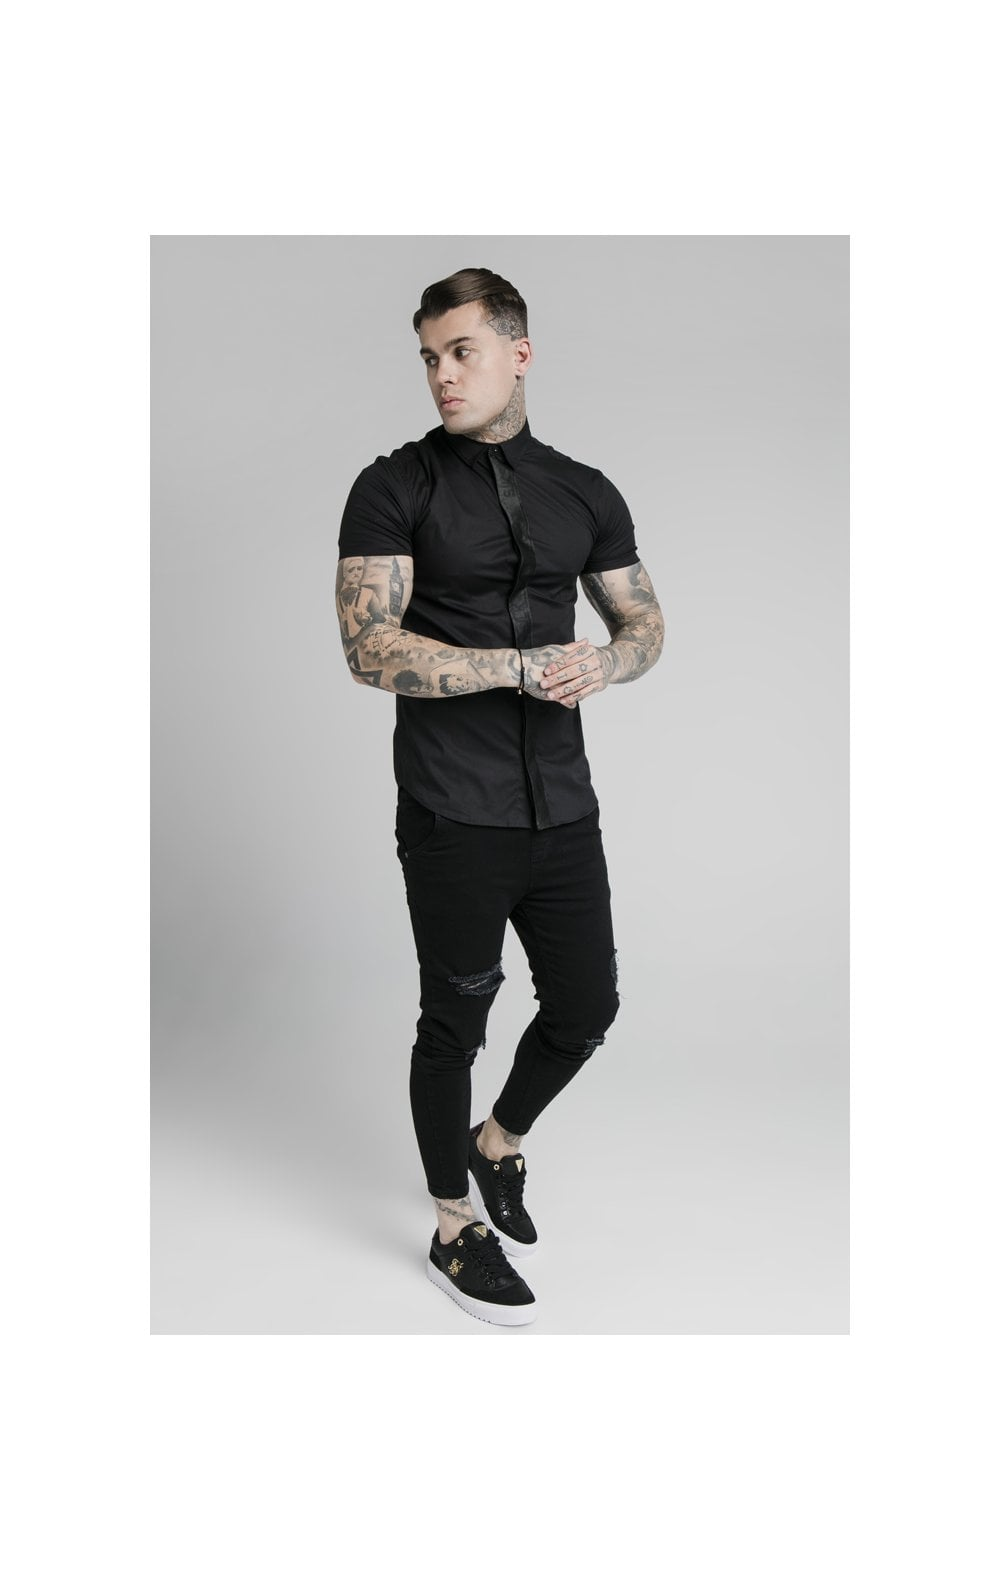 SikSilk S/S Woven Tape Placket Shirt - Black (2)